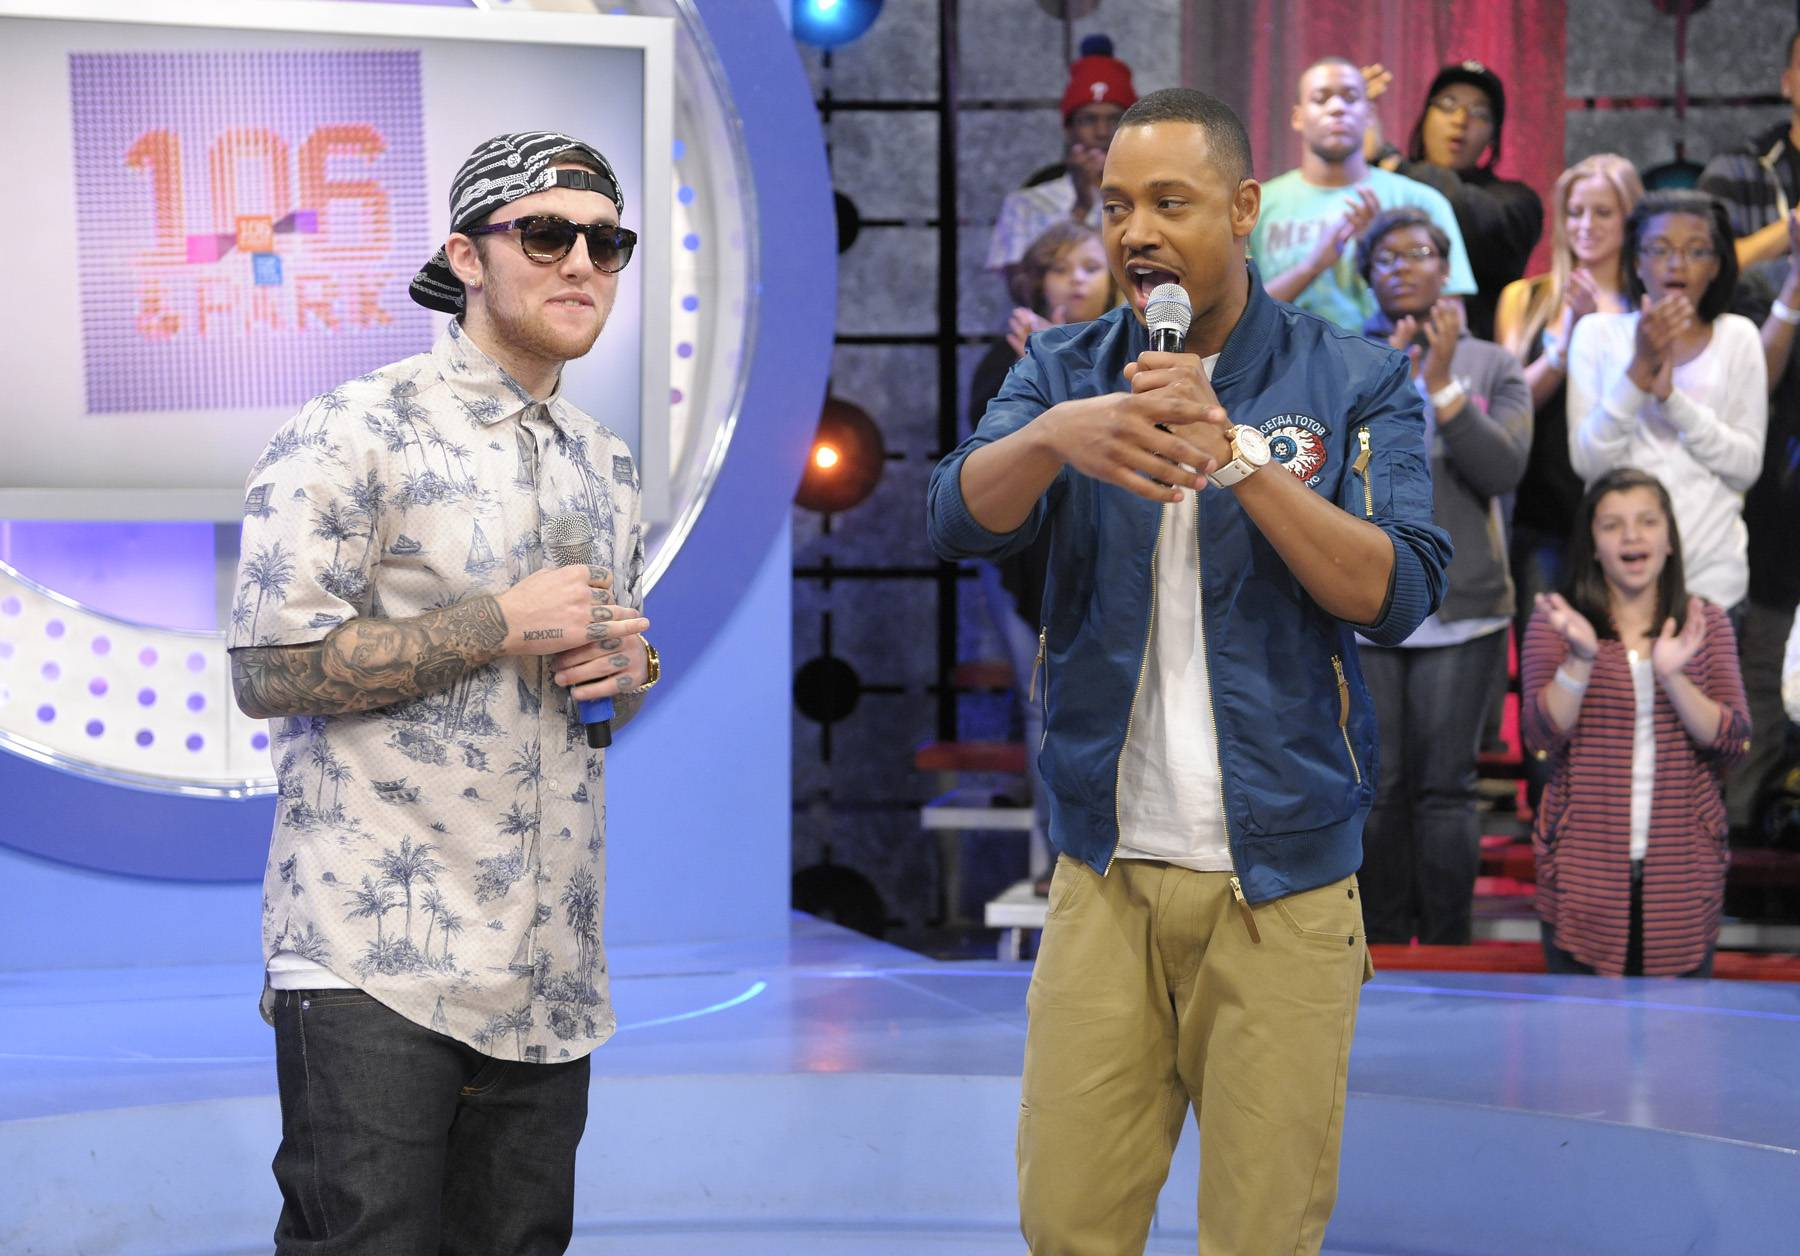 Believe It - Mac Miller tells Terrence J he listened to artists like Outcast and A Tribe Called Quest growing up at 106 & Park, April 26, 2012. (Photo: John Ricard / BET)